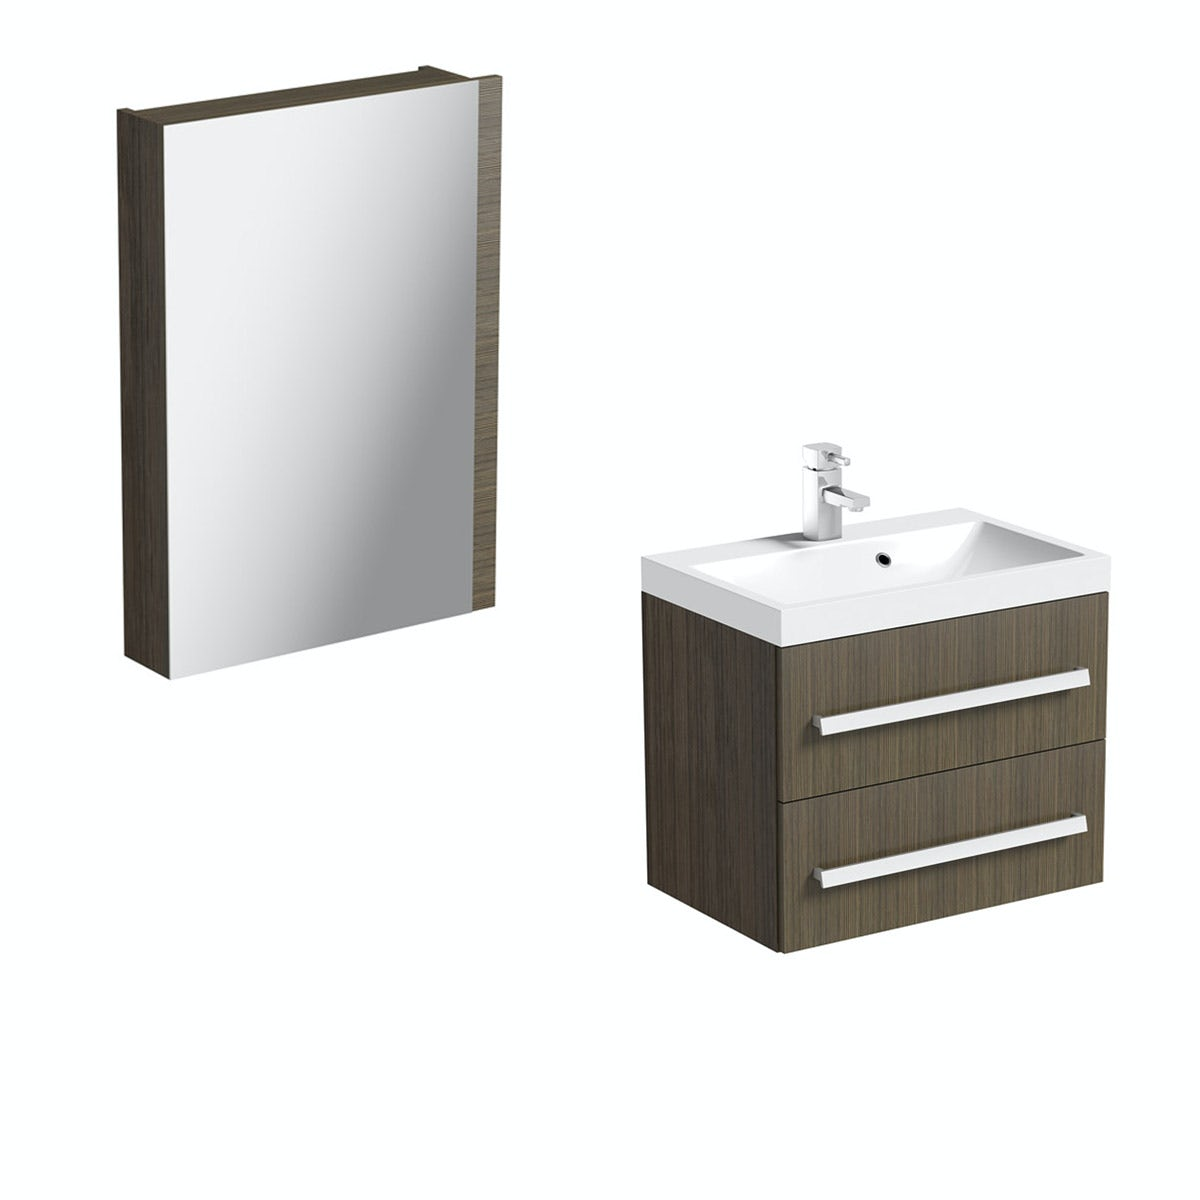 Arden Walnut Wall Hung Vanity Unit With Basin & Mirror - 600mm